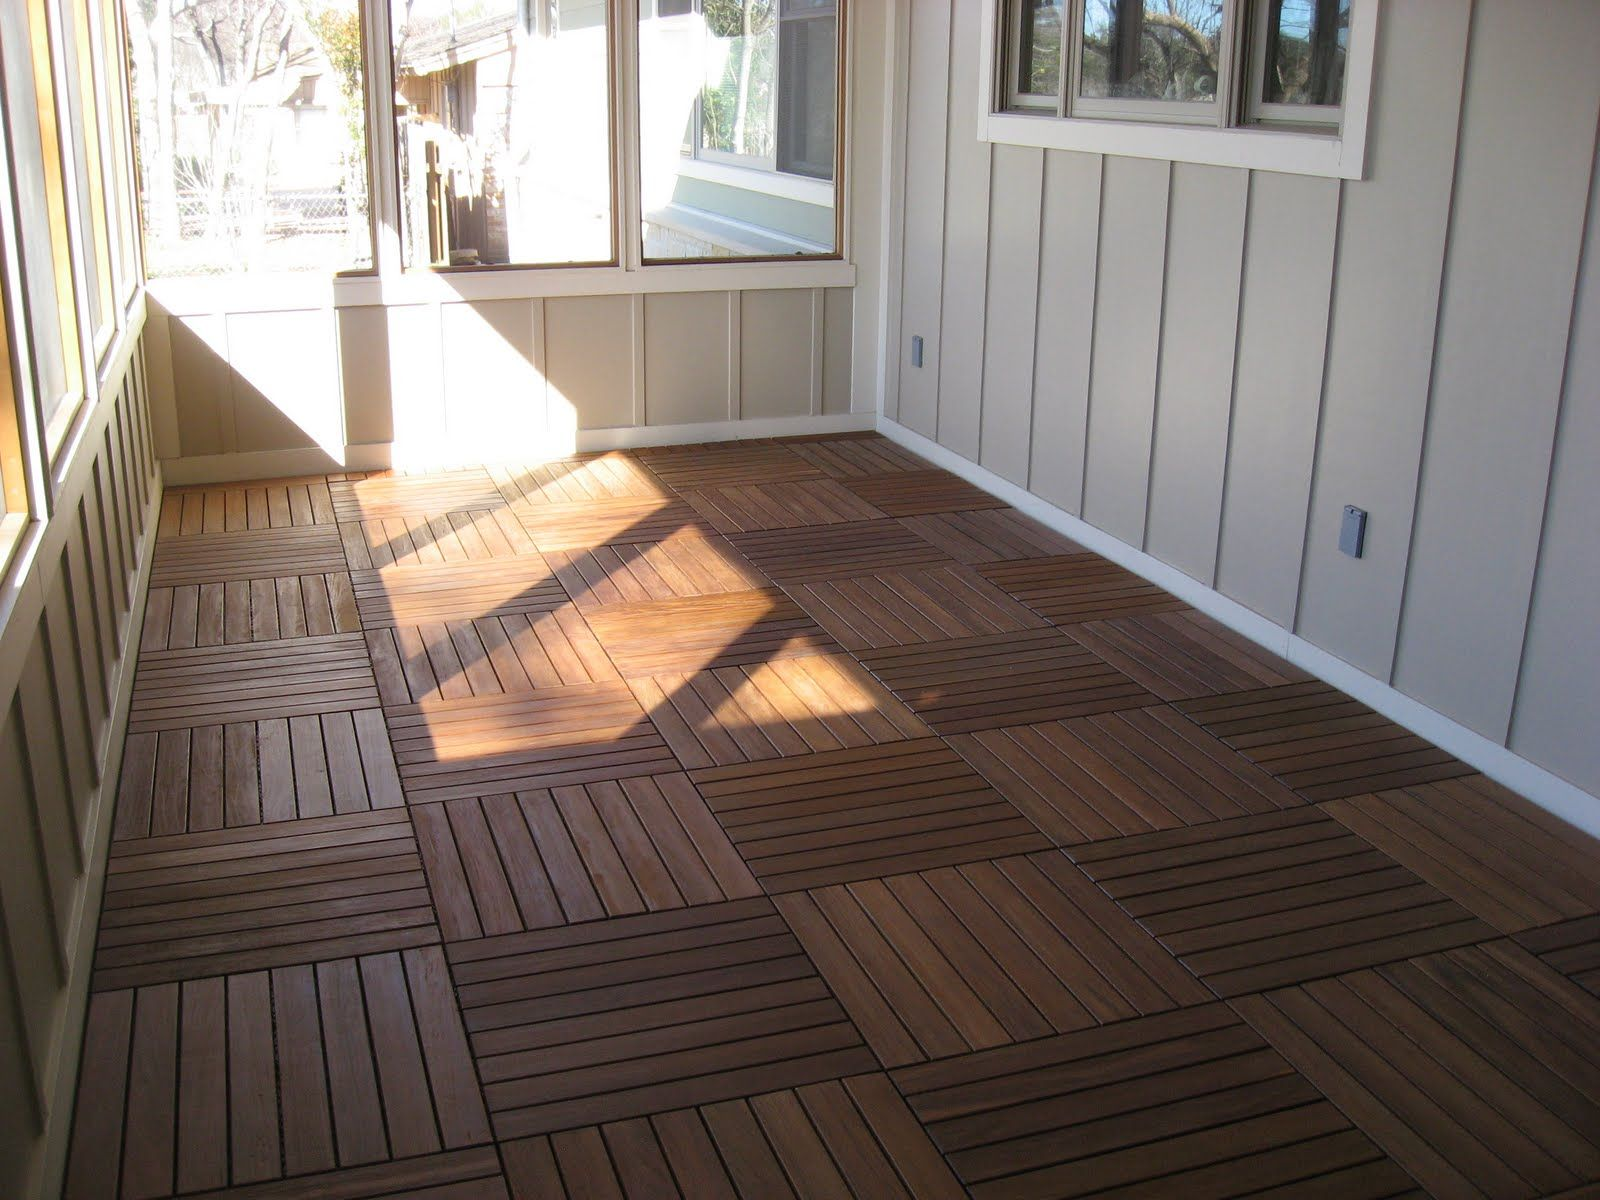 Screen porch flooring ideas just for a minute though for Indoor outdoor flooring options